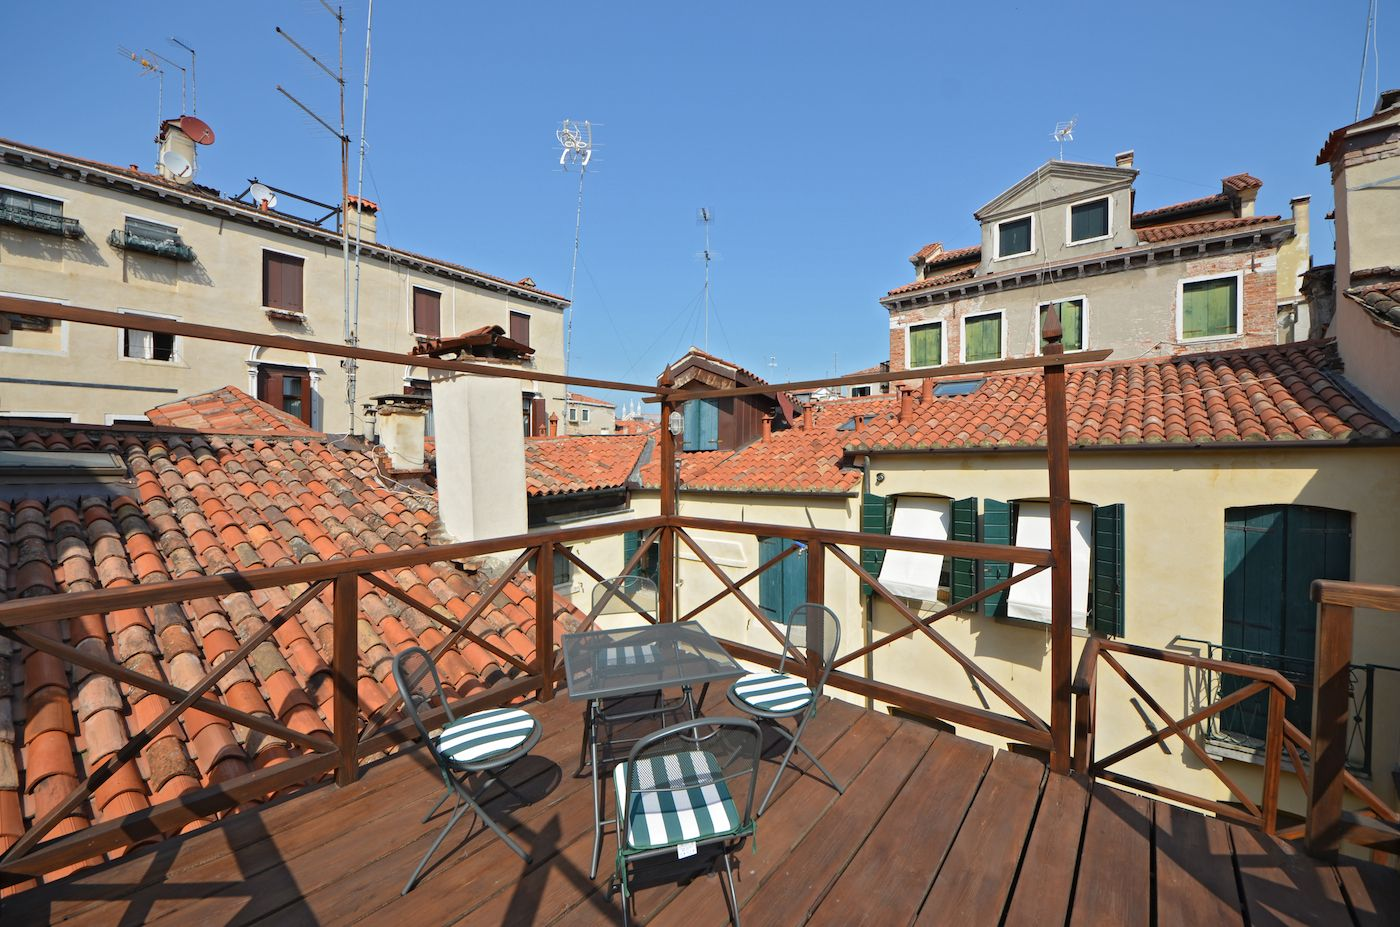 the terrace is very spacious and easily accessible